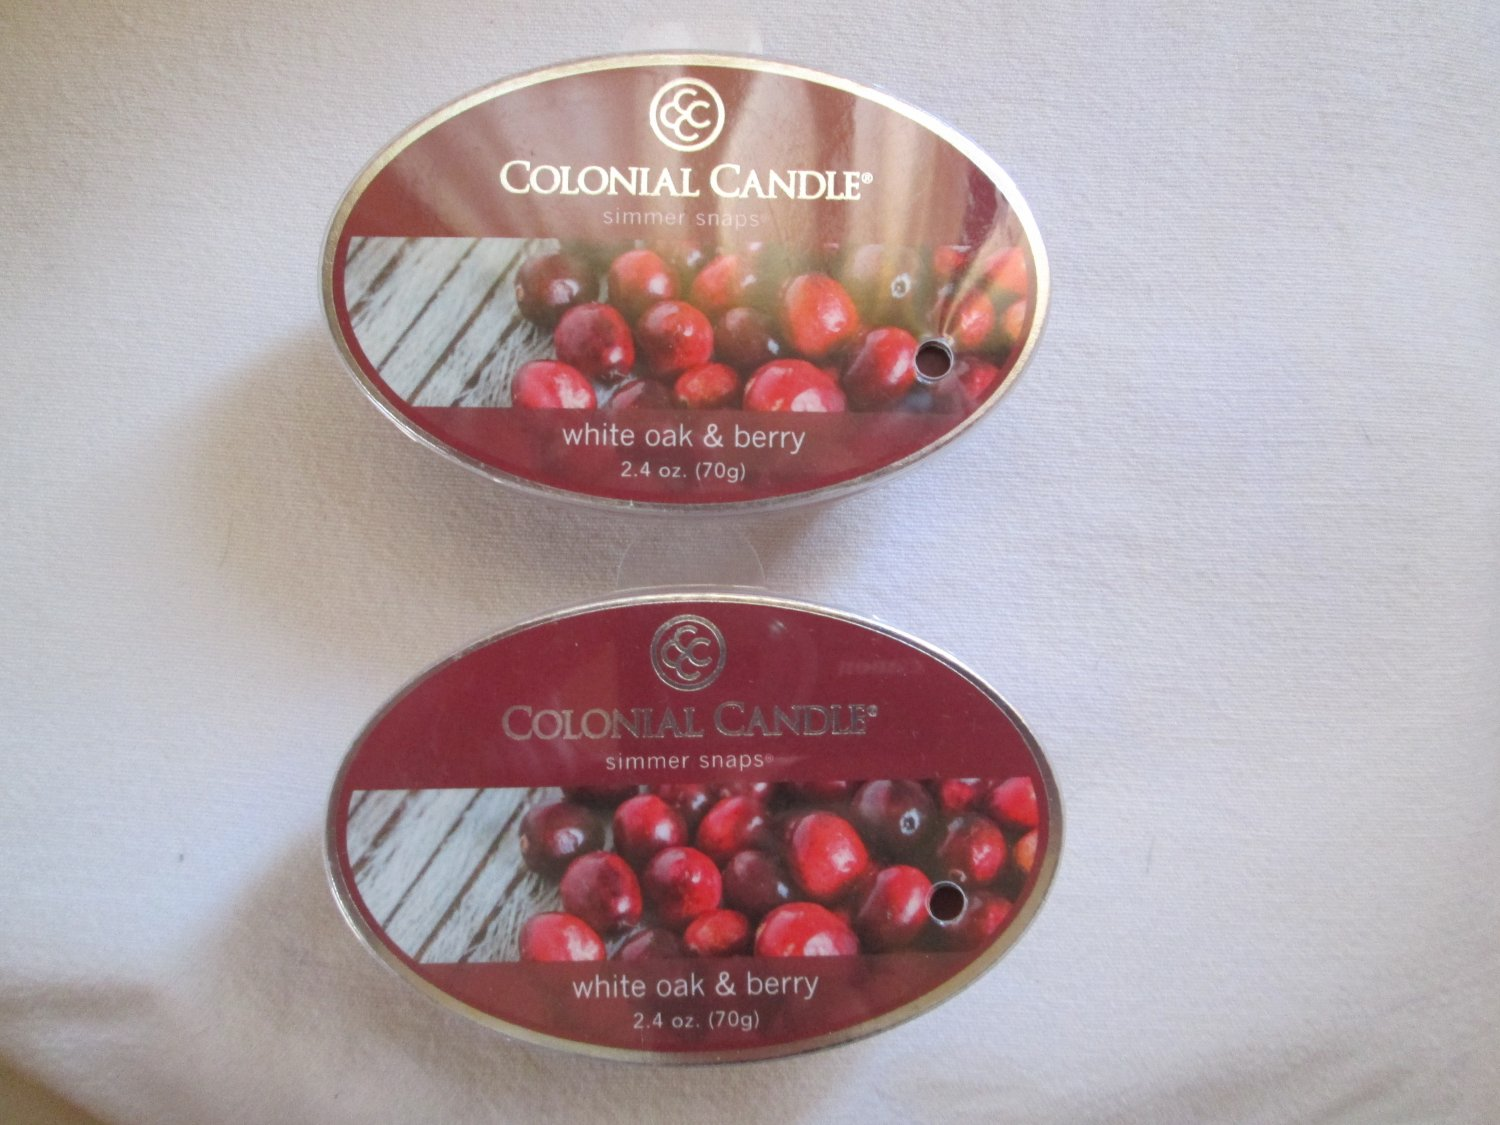 """2 Colonial Candle Simmer Snaps""""WHITE OAK & BERRY"""" 2.4 oz wax melts/ tarts"""